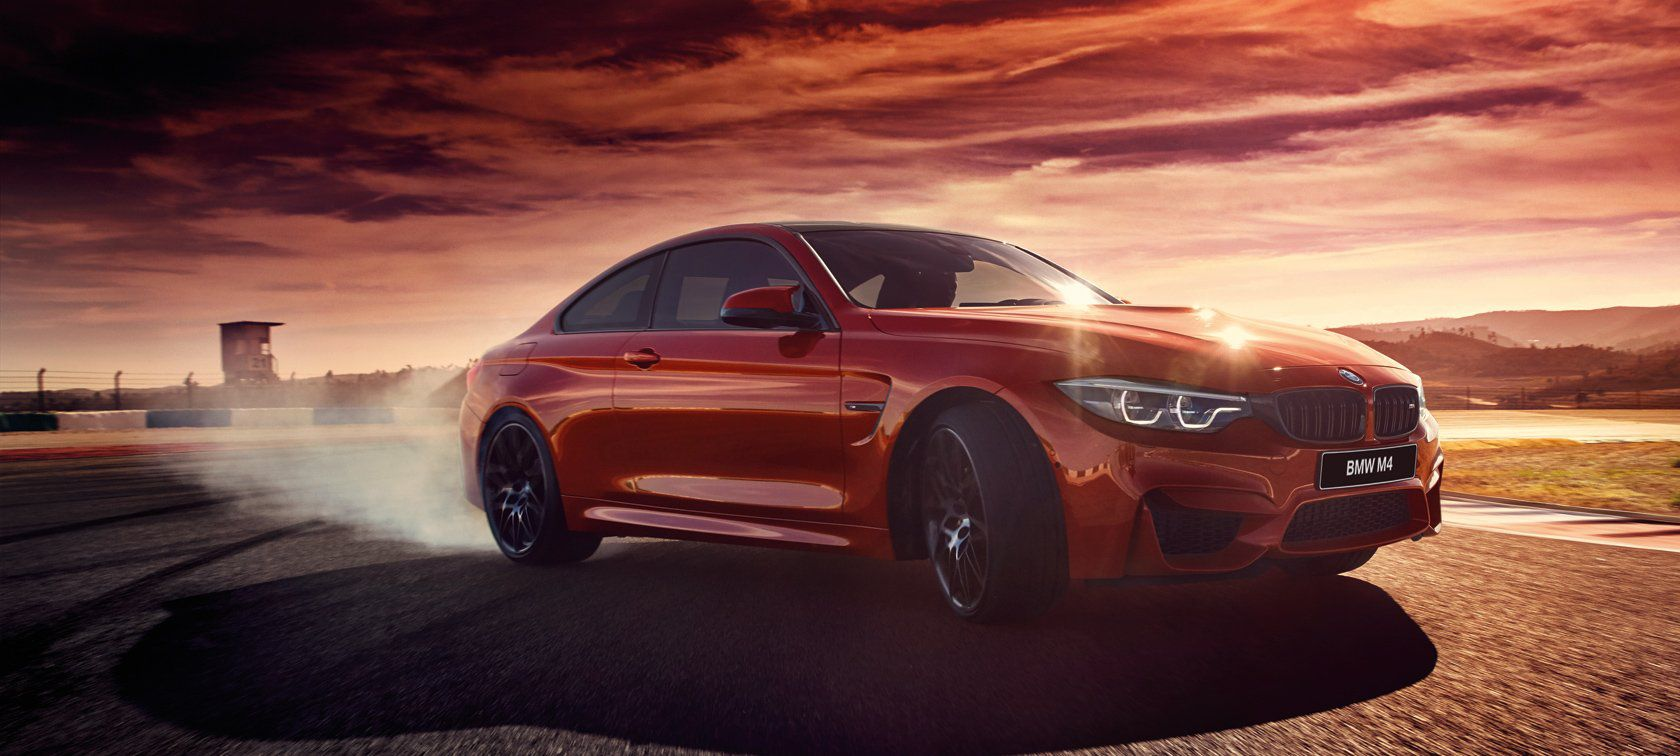 21 Bmw M4 Wallpapers And Images In Hd